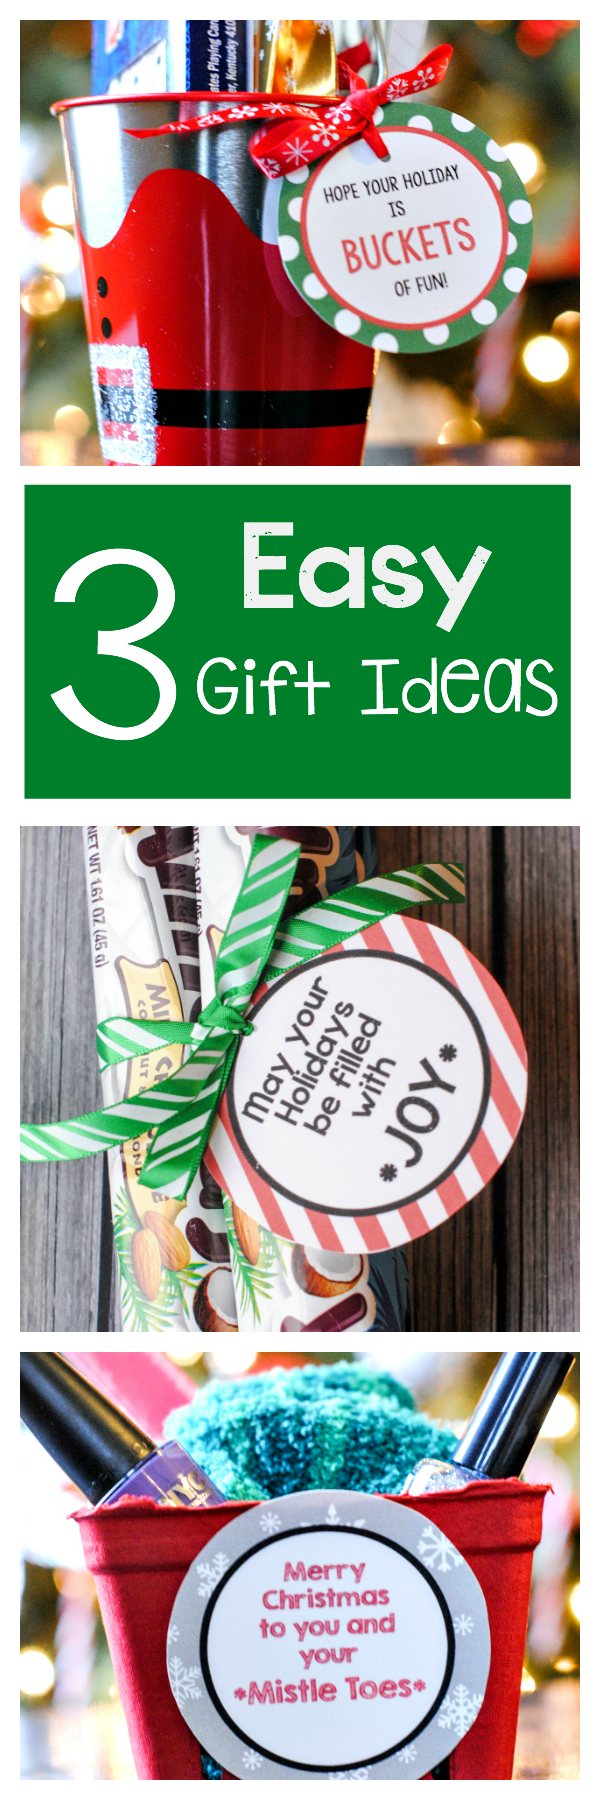 3 easy gifts ideas for friends